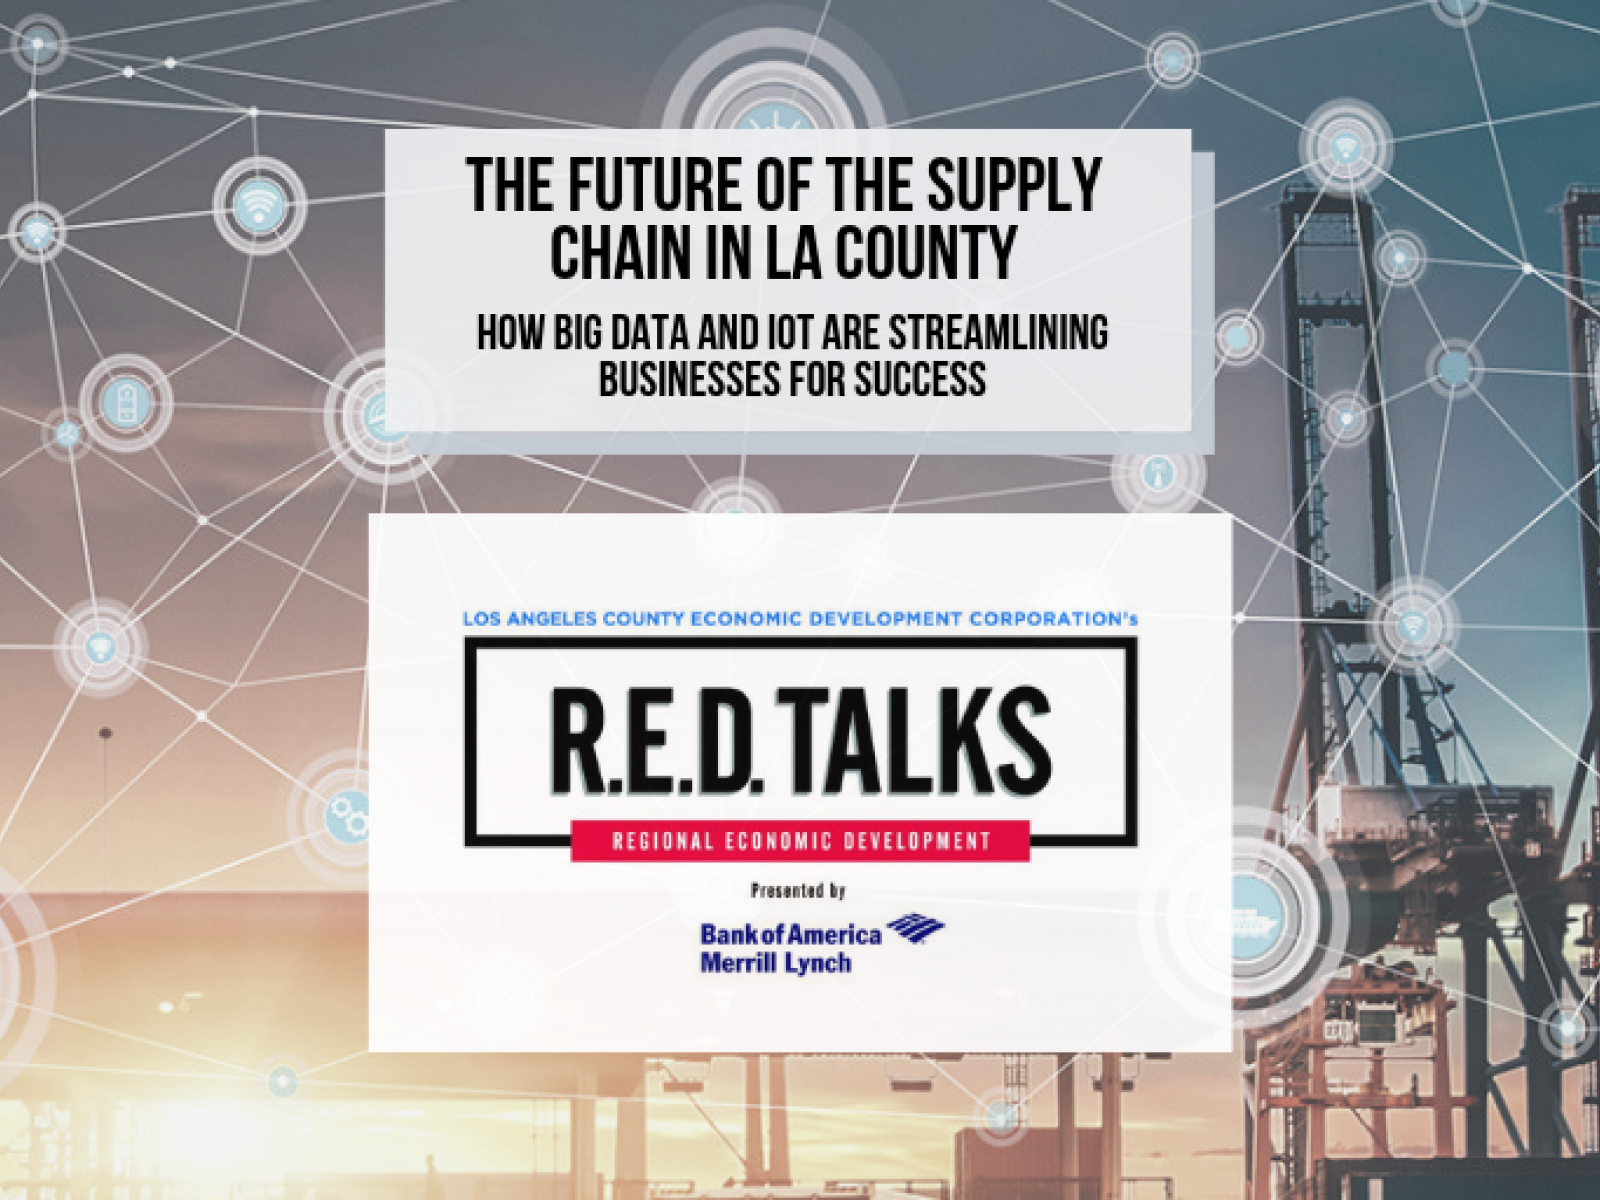 Head from industry experts and network over continental breakfast, May 21st, 9:00AM at Cross Campus El Segundo